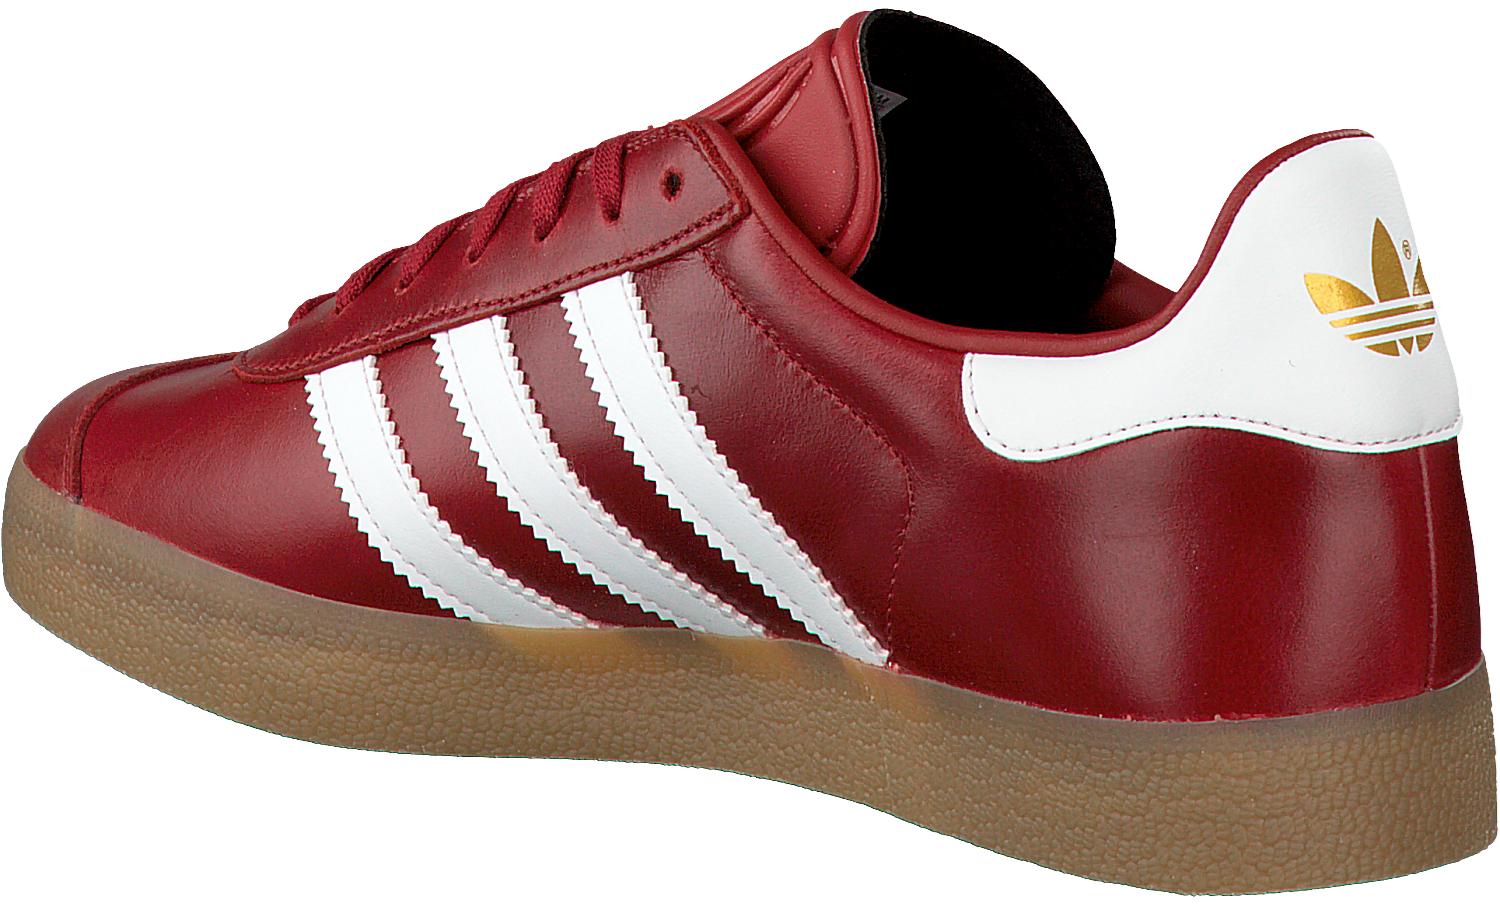 the best attitude 671e9 9e415 Rode ADIDAS Sneakers GAZELLE HEREN. ADIDAS. -50%. Previous